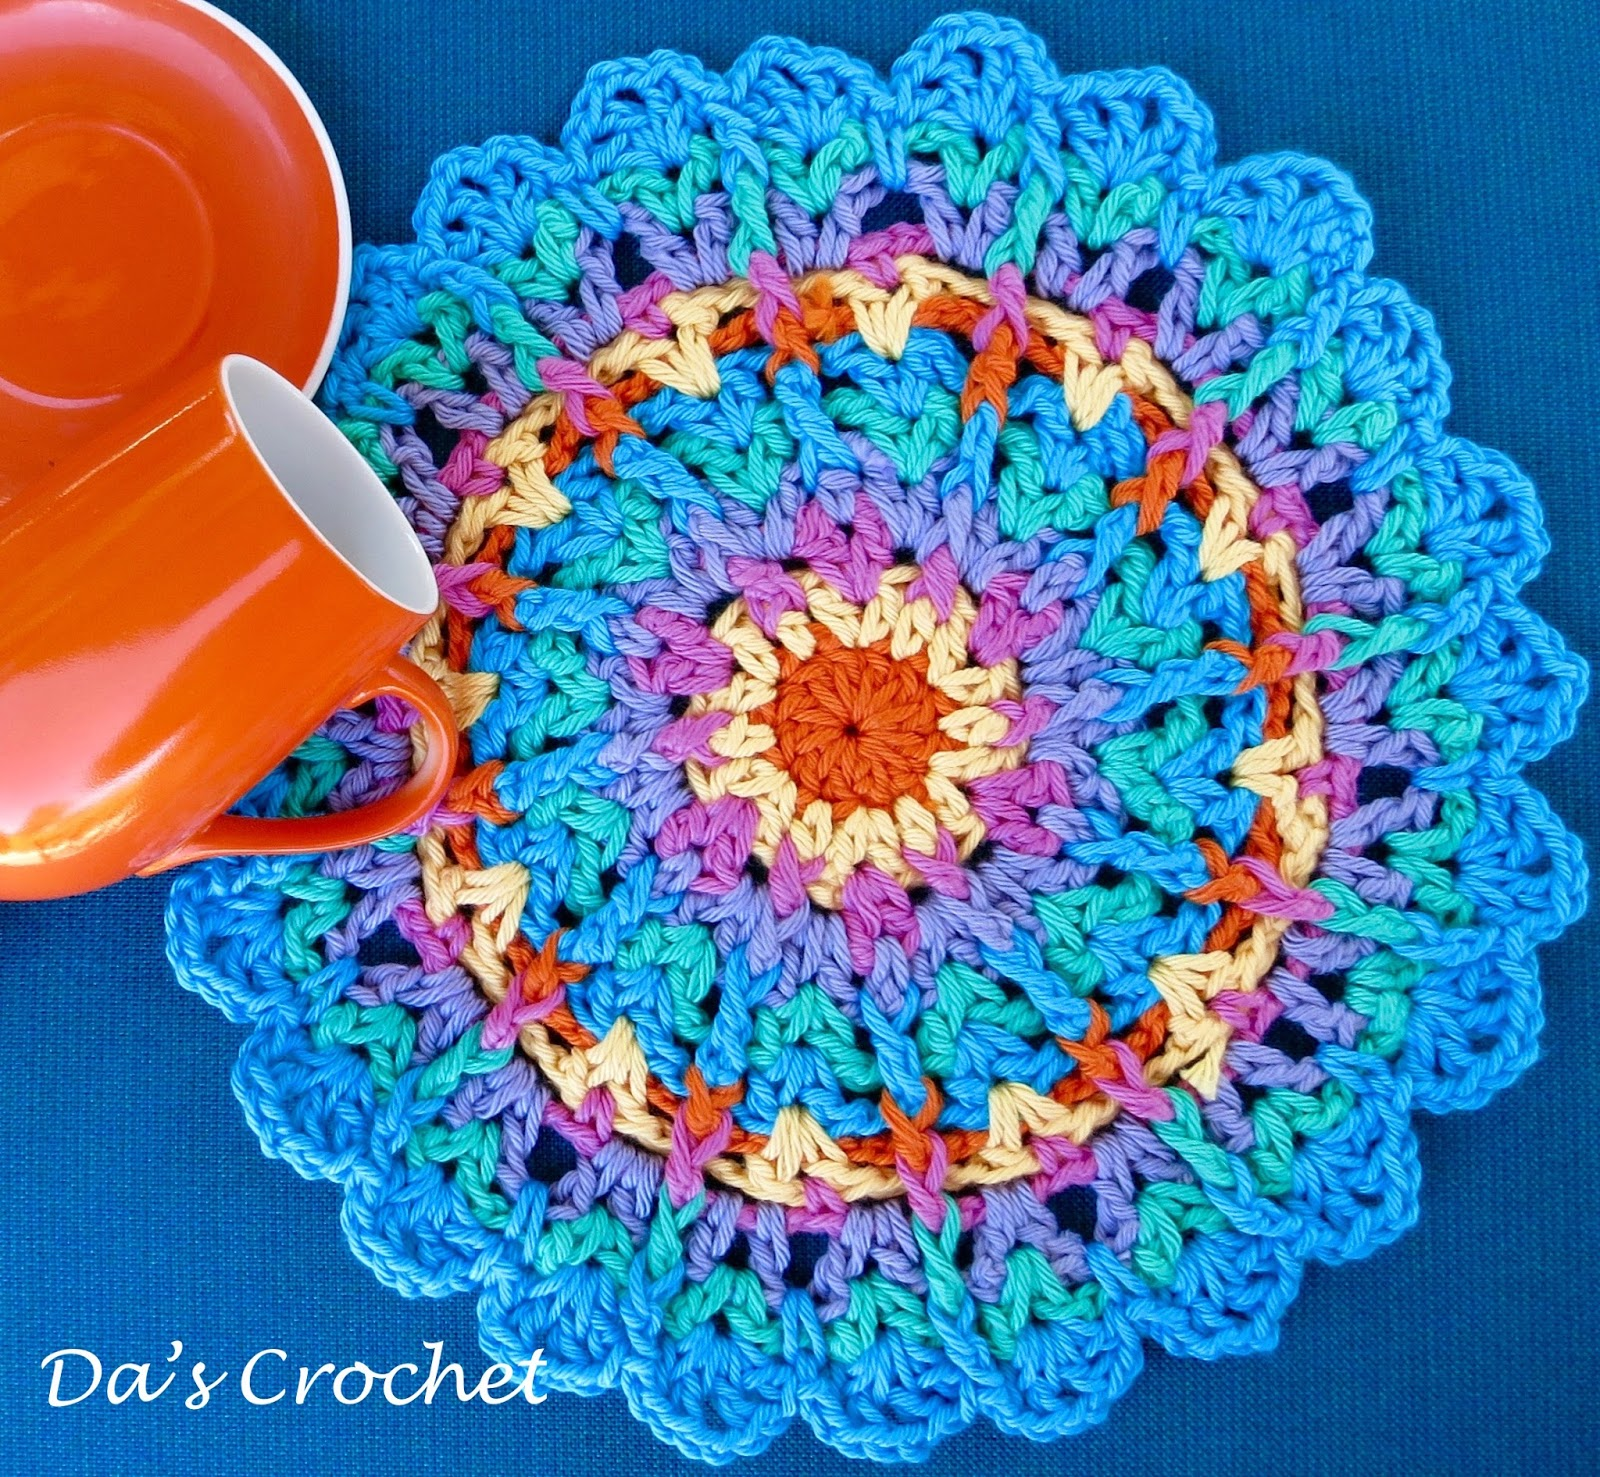 Das Crochet Connection: Why a Pattern Store?